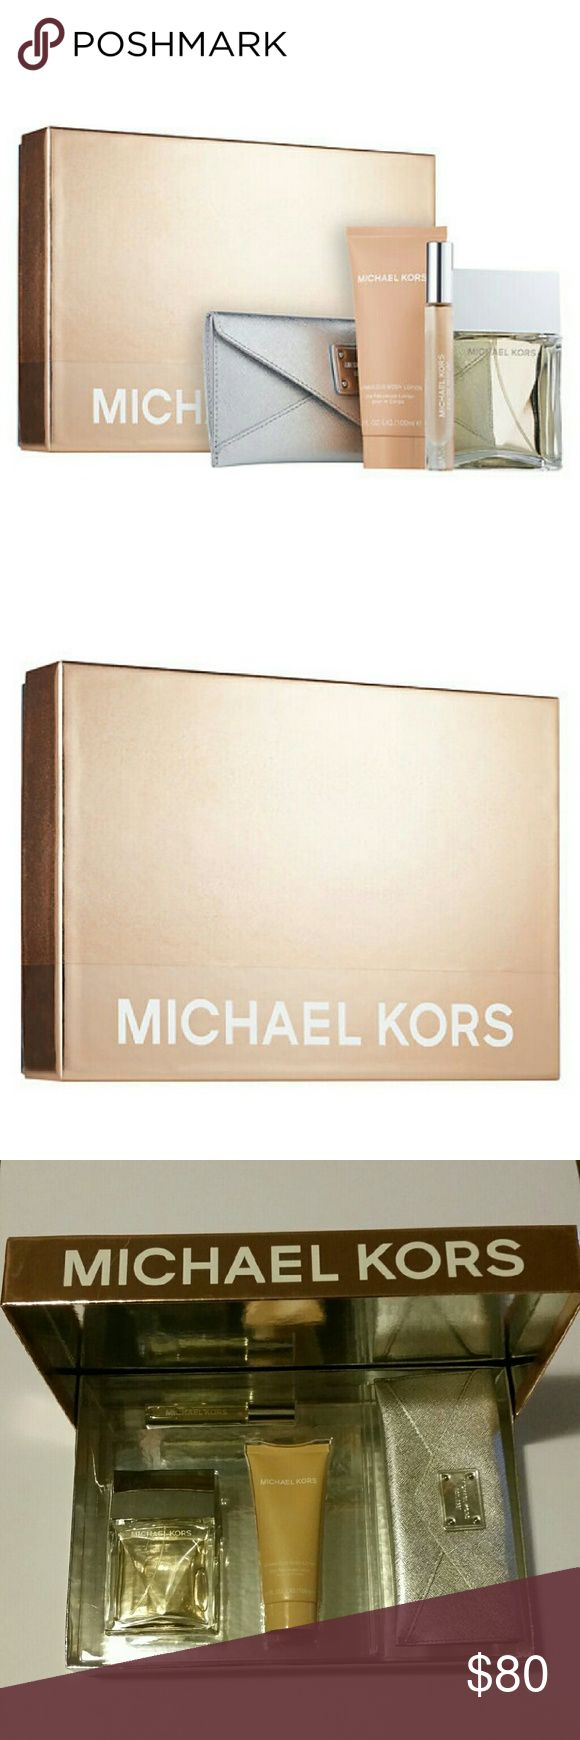 Michael Kors Signature Gift Set Glamorous yet easy; rich yet relaxed-the Michael Kors Signature Eau de Parfum is elegance at ease. Drawn from travels to London and Shanghai, St. Tropez and Capri, they captured a blend  that in bodies this.   Set includes: Eau de Parfum Spray, 3.4 oz Eau de Parfum Rollerball, 0.34 oz Fabulous Body Lotion, 3.4 oz Cosmetic case Michael Kors Other